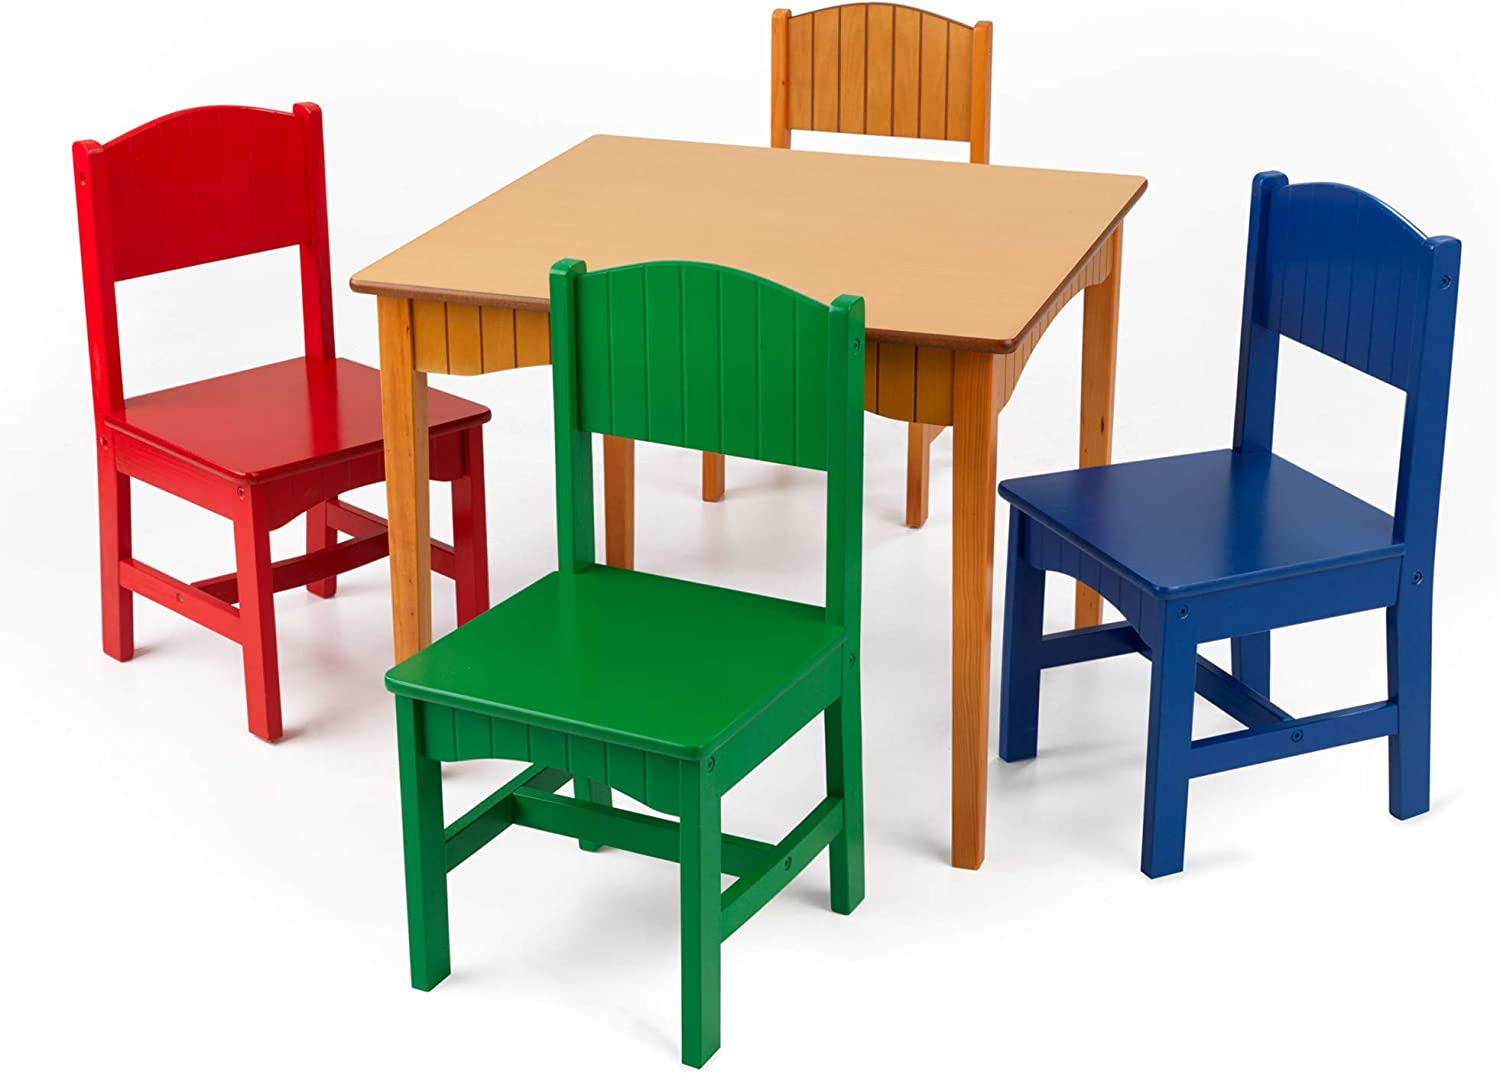 KidKraft Nantucket Popularity Kid's Wooden Table NEW before selling ☆ Chairs Wainsc 4 Set with